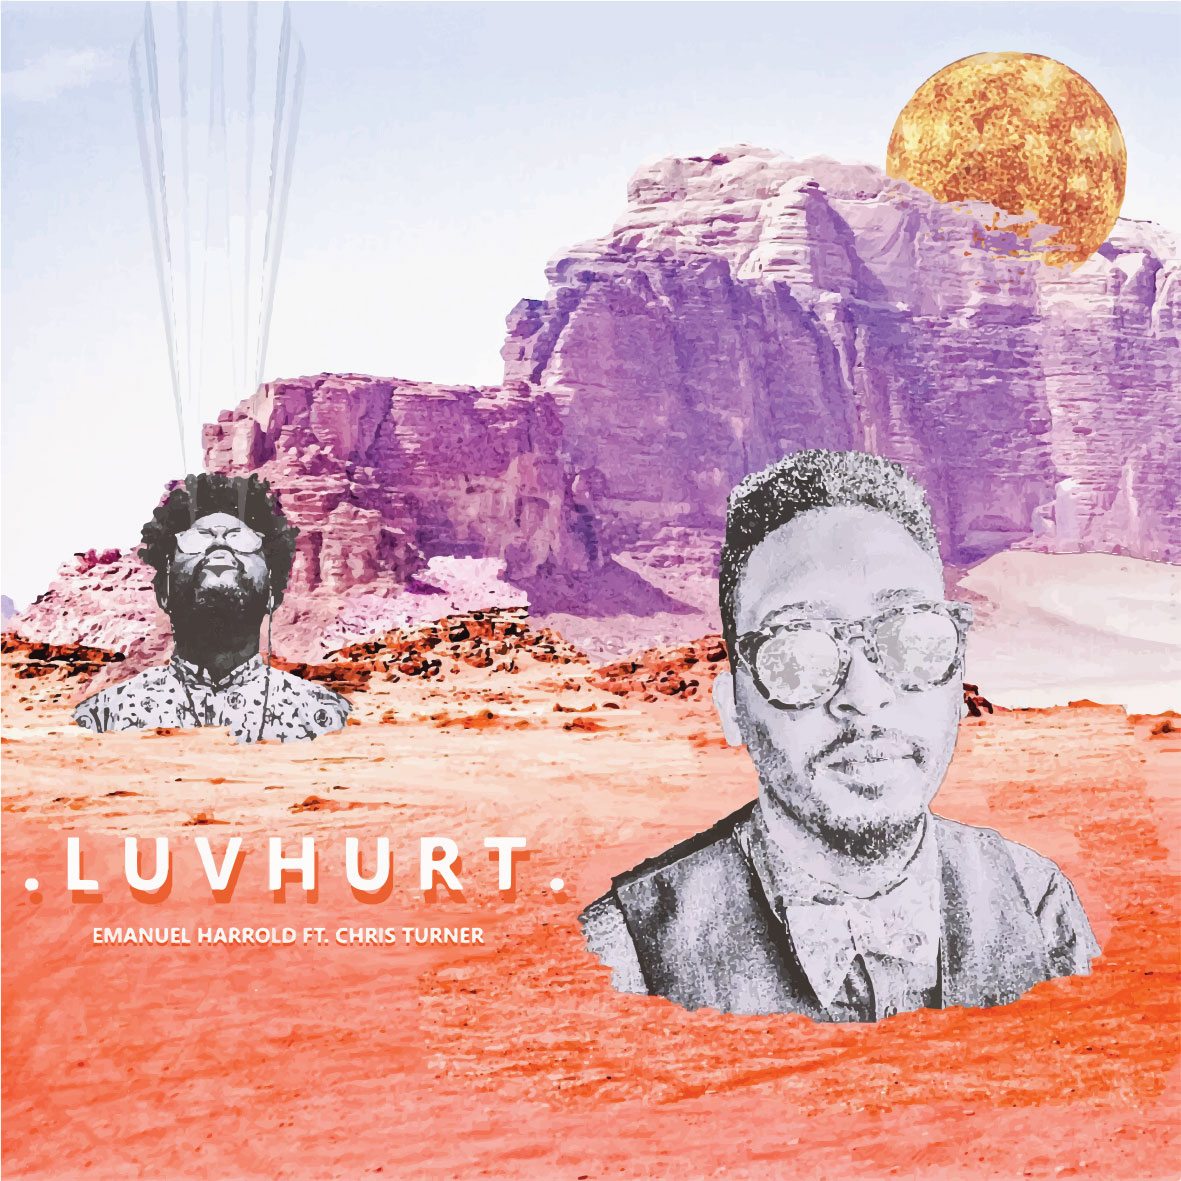 Single cover for Emanuel Harrold - LUV HURT ft. Chris Turner (Bilal),  Rocco Palladino  (D'Angelo), Andrew Baille (Cory Henry & The Funk Apostles).